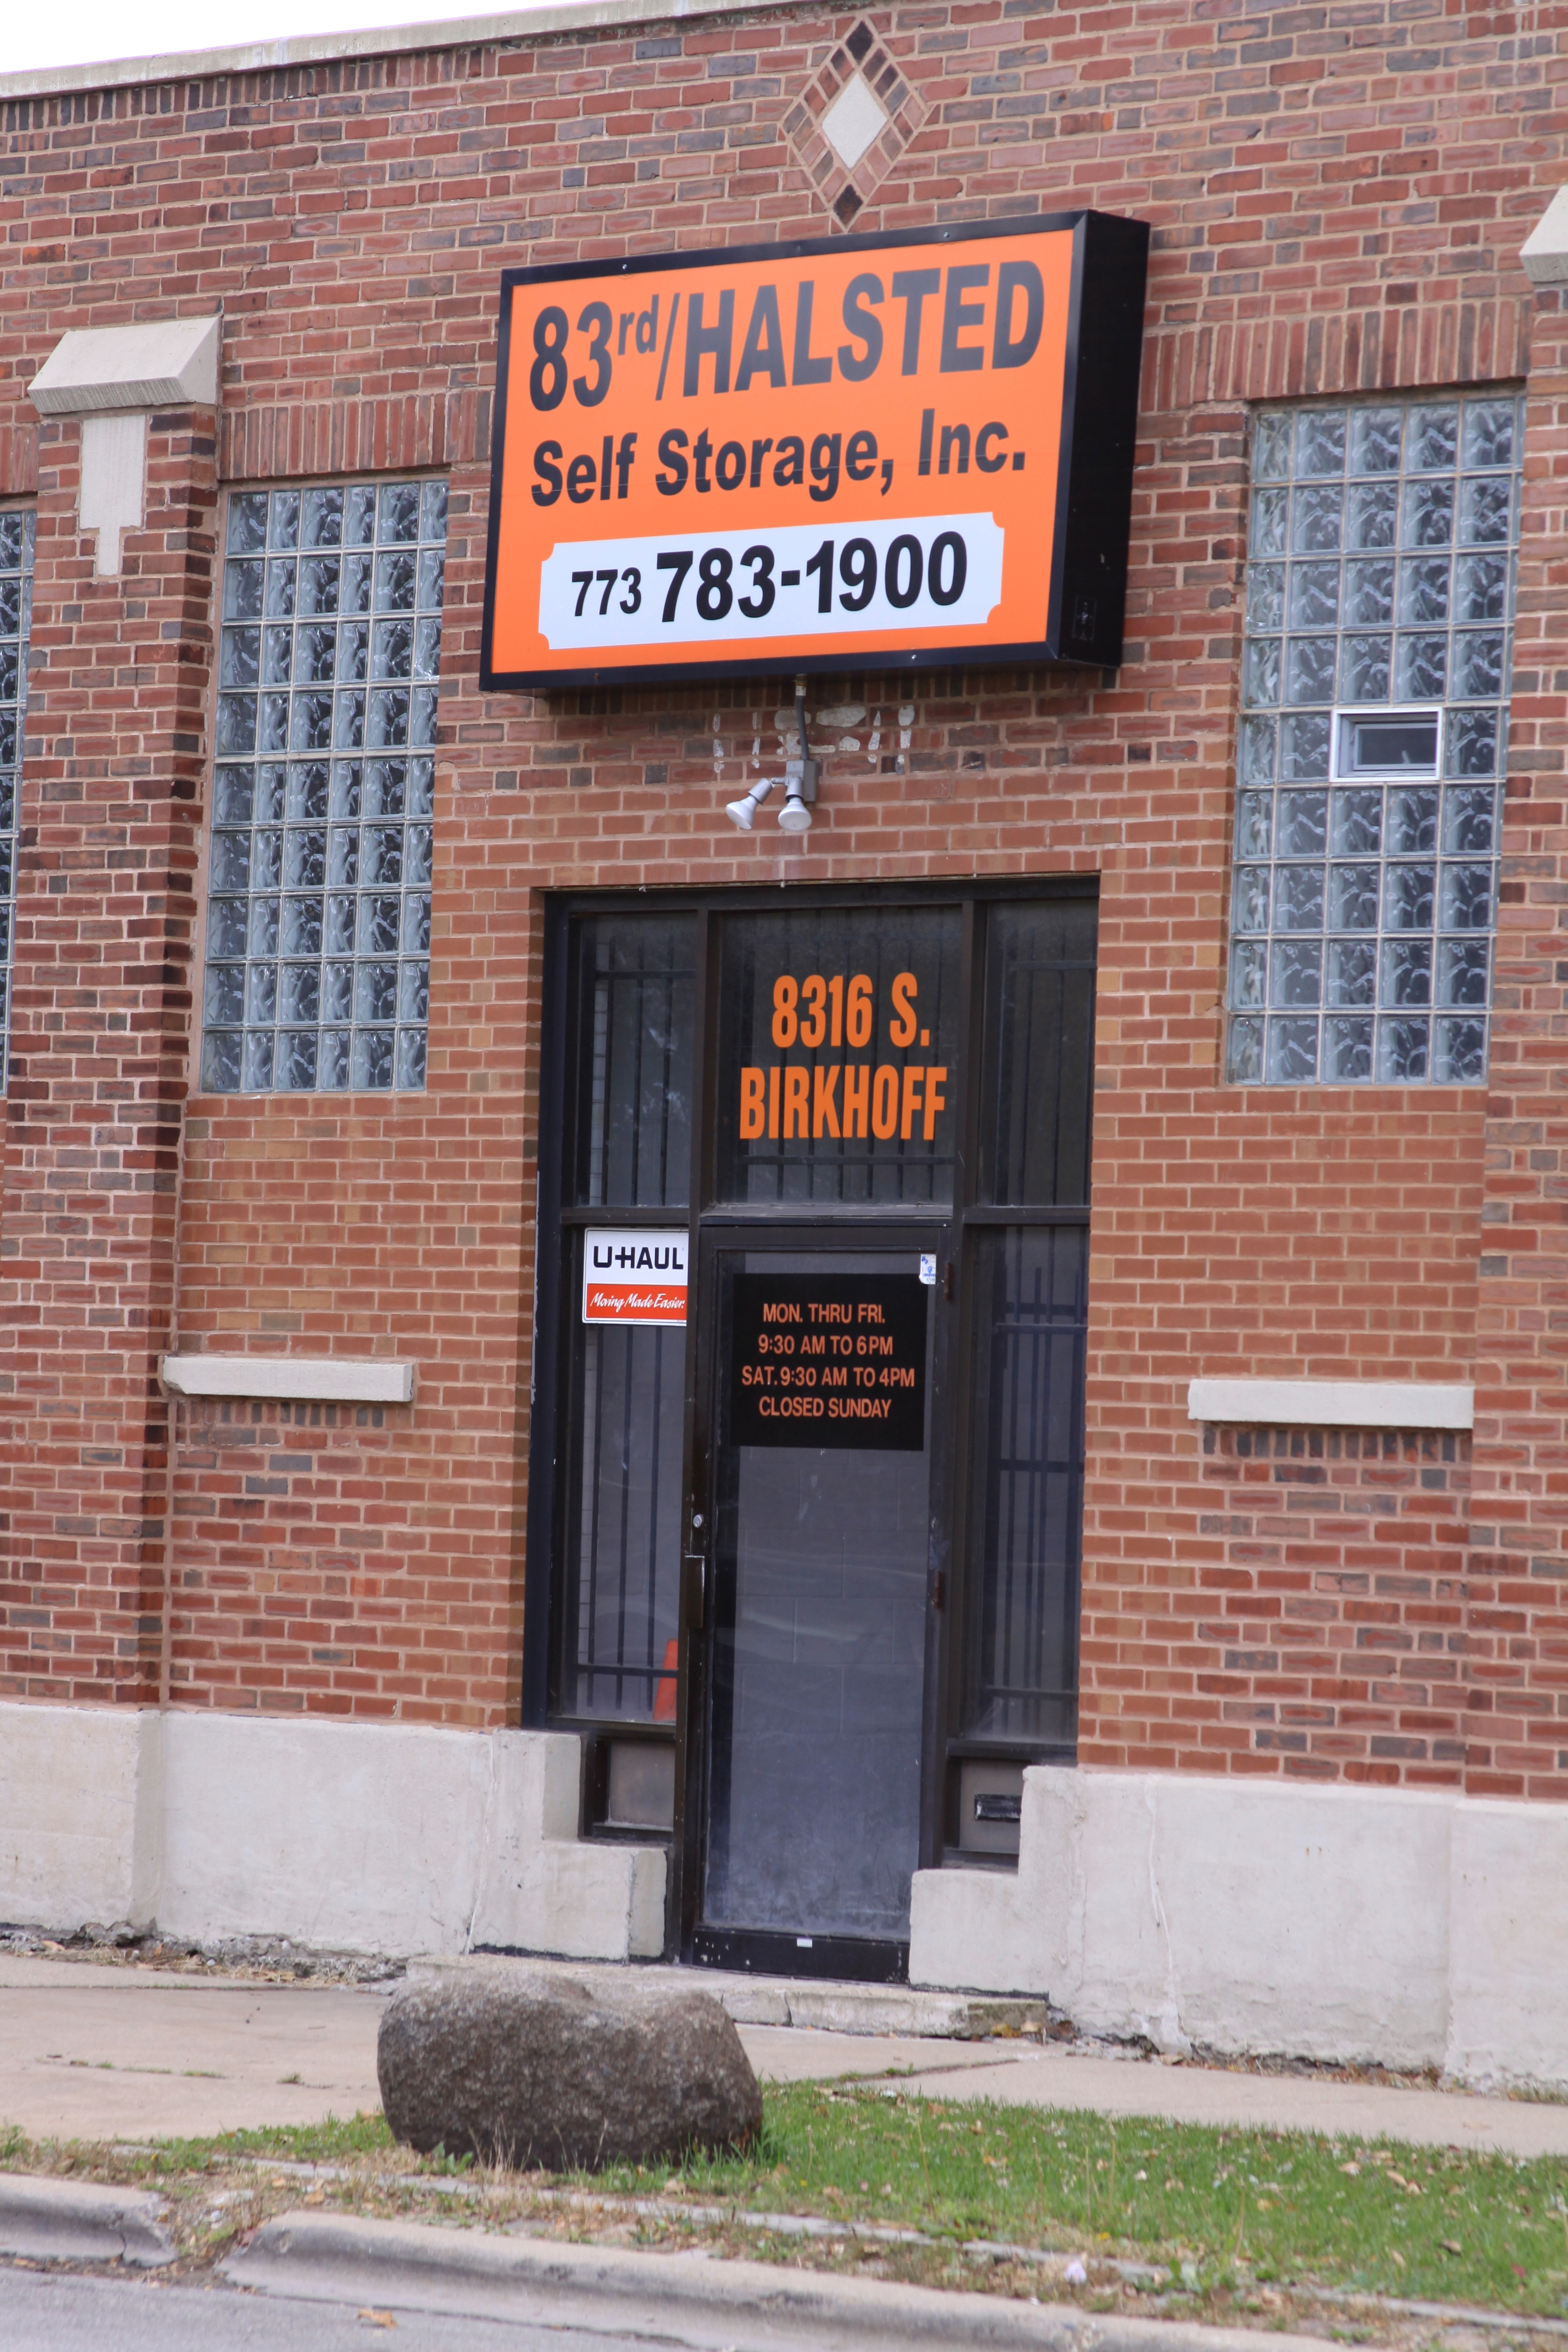 83rd Halsted Self Storage, Inc. Chicago (773)783-1900